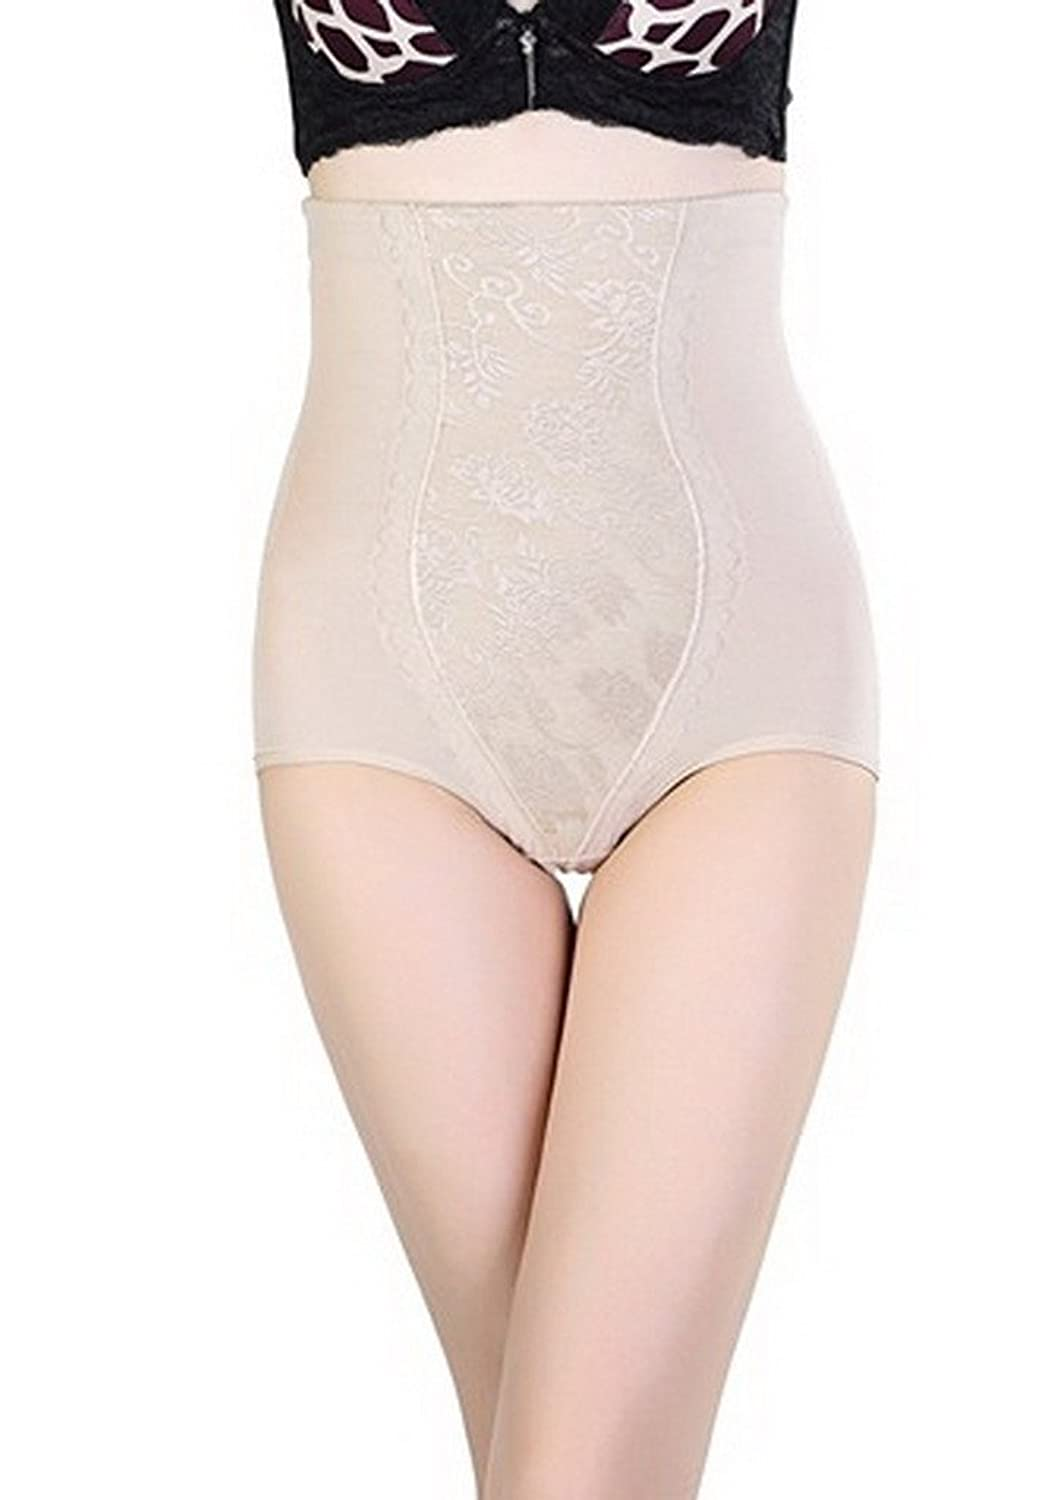 Smile YKK Figur-Body Bodyshaper Figurenformend Miederpants Body online kaufen